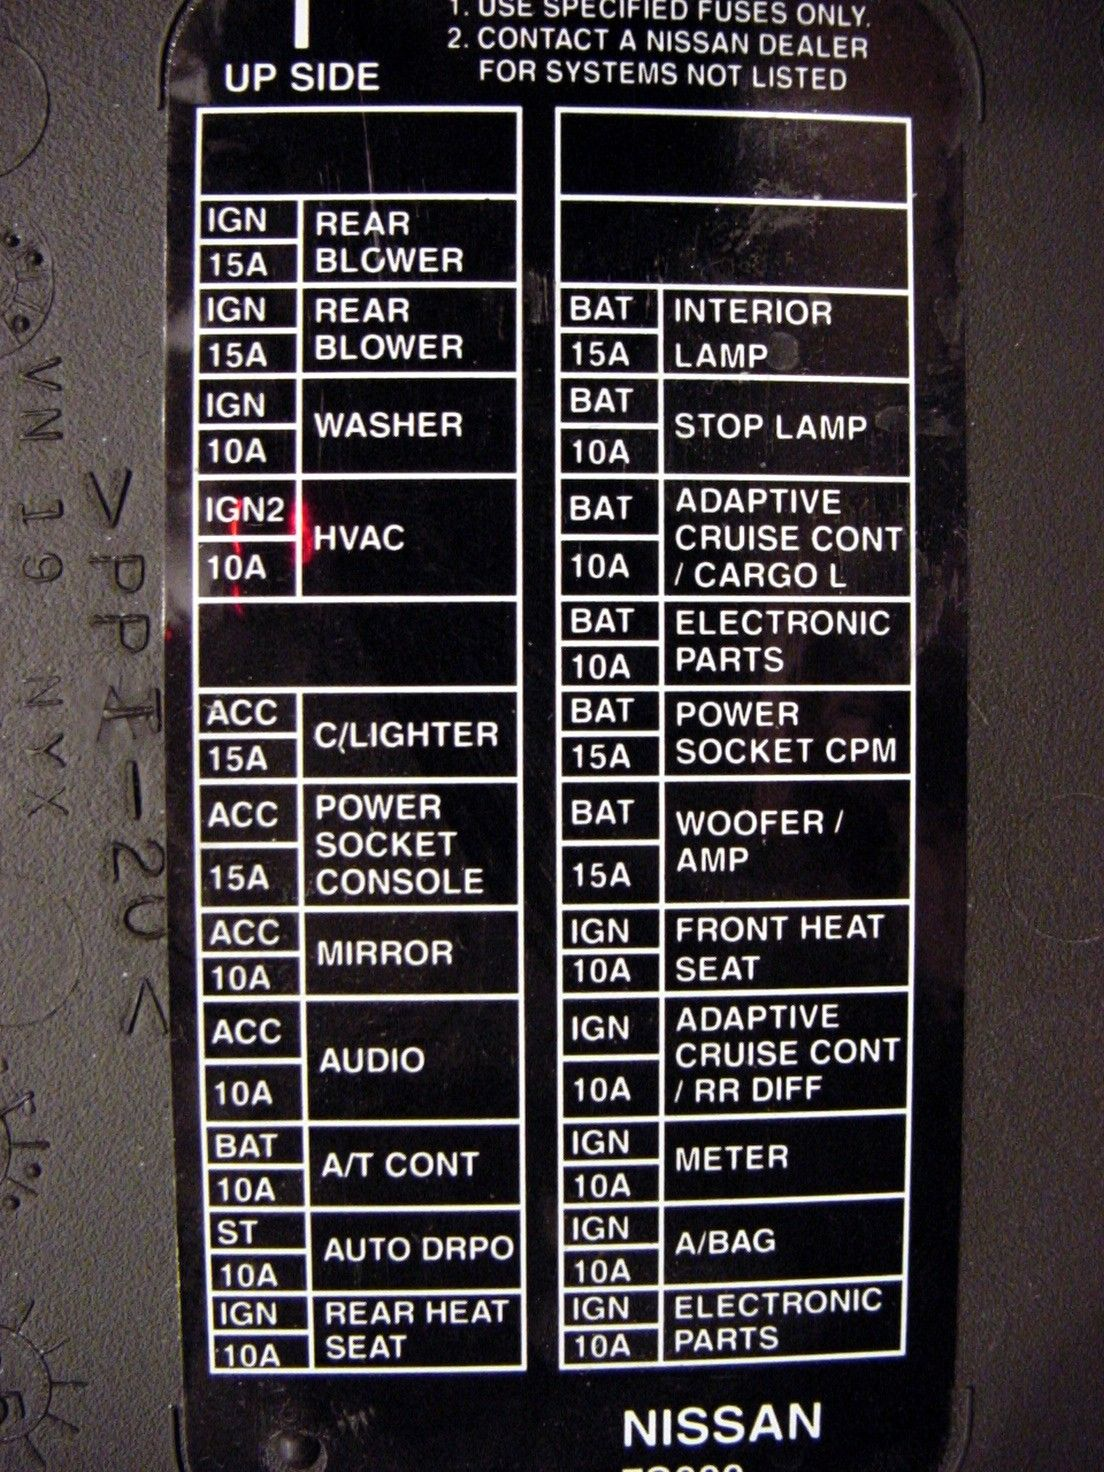 hight resolution of 2011 nissan maxima fuse diagram wiring diagram database 2011 maxima fuse box